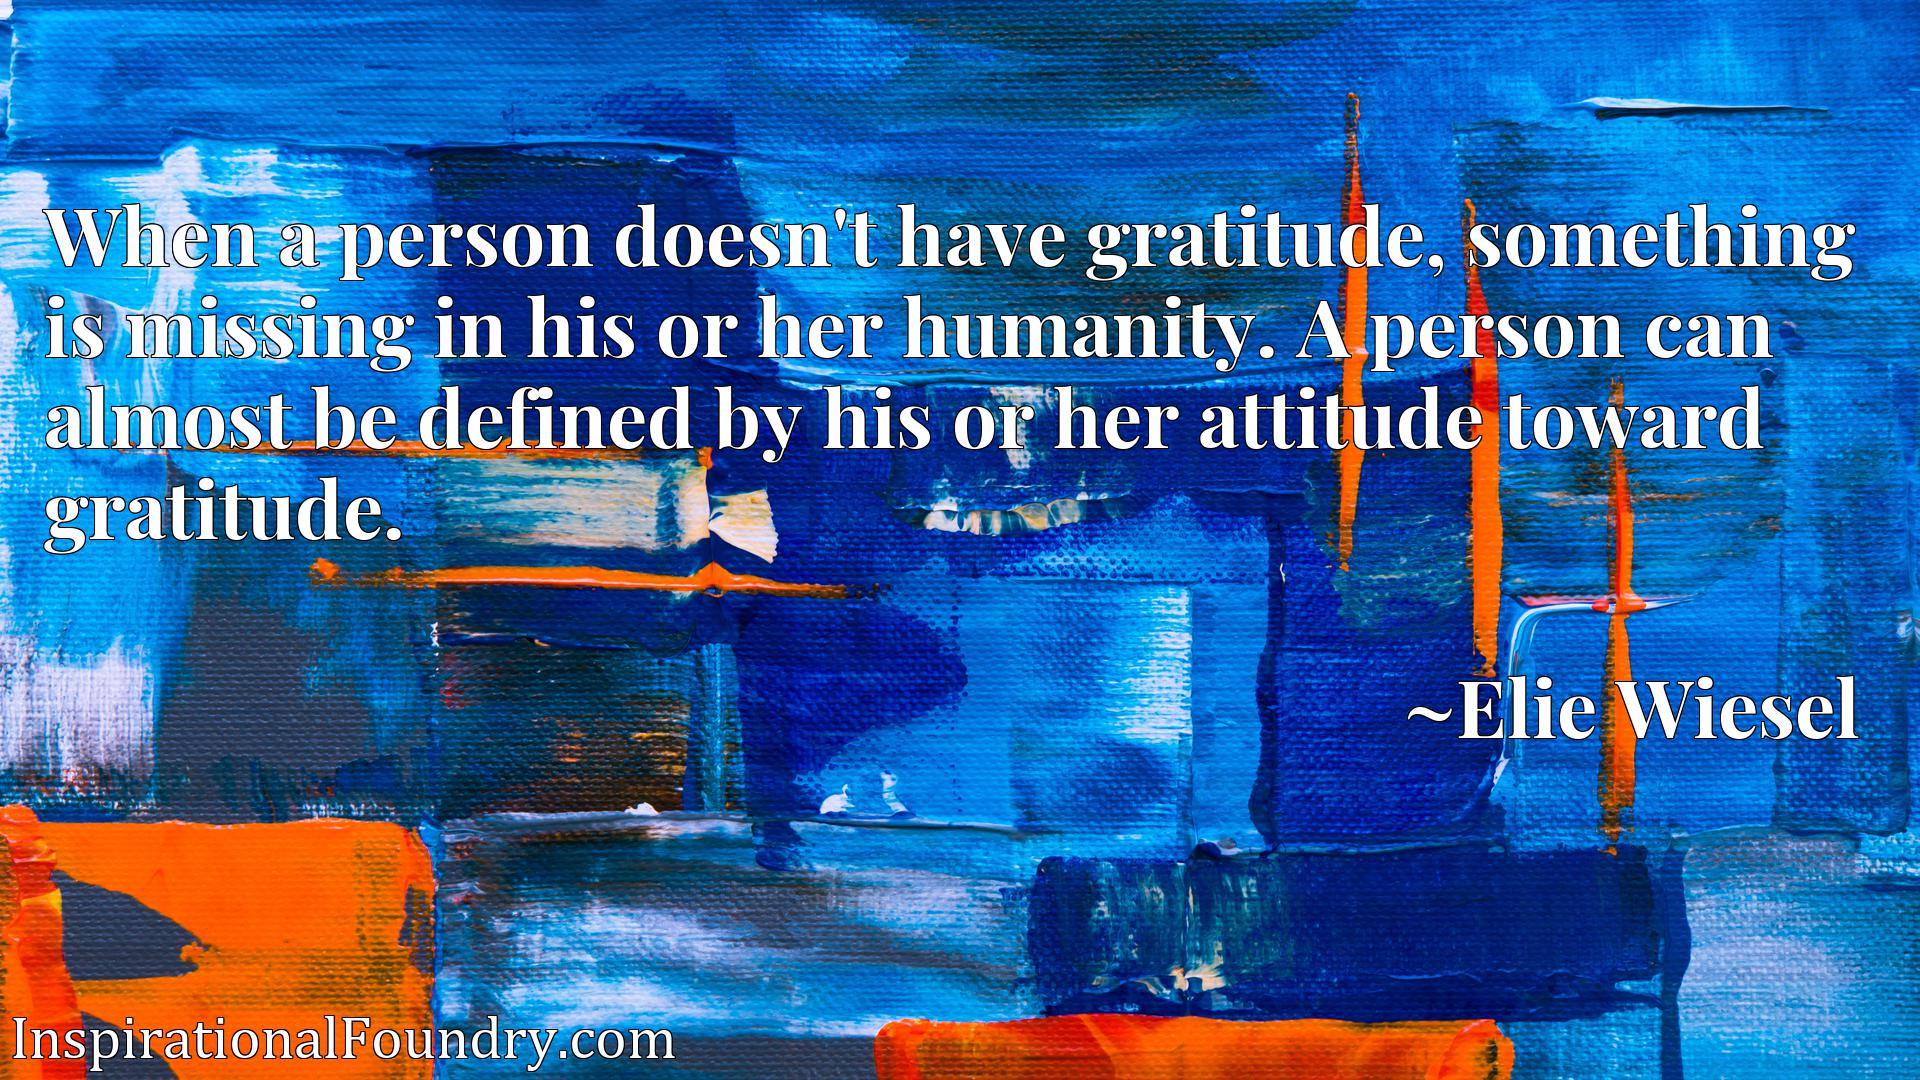 When a person doesn't have gratitude, something is missing in his or her humanity. A person can almost be defined by his or her attitude toward gratitude.